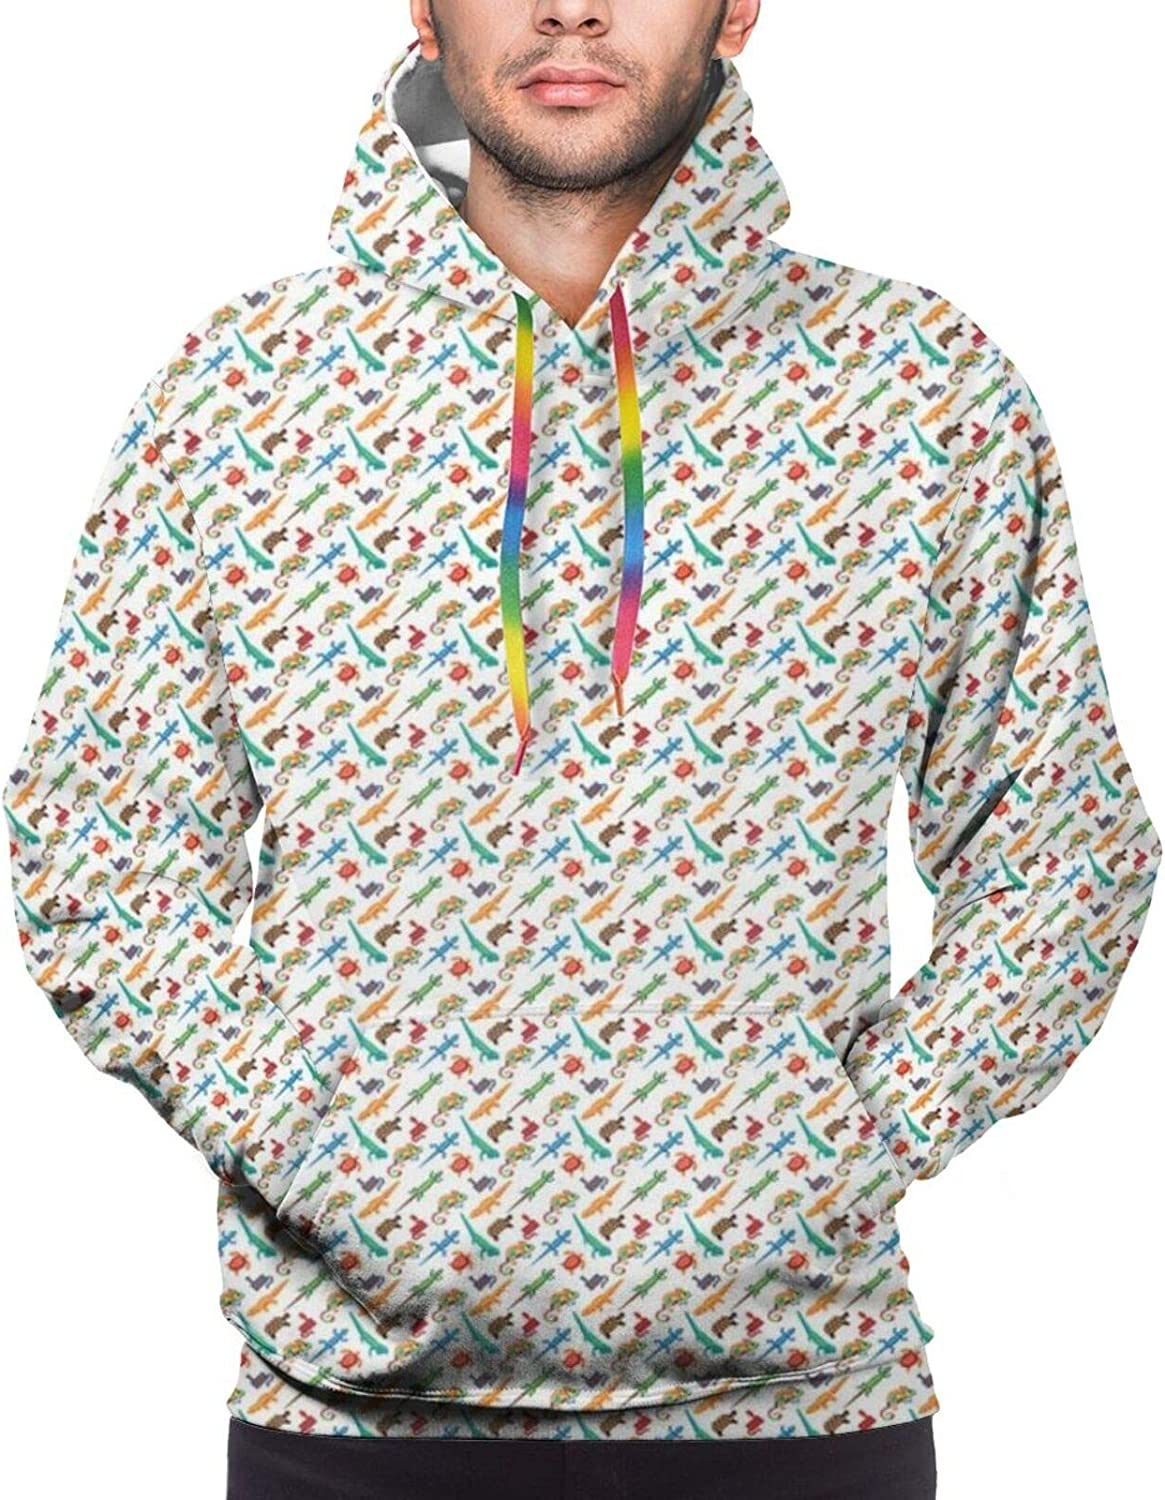 Men's Hoodies Sweatshirts,Abstract Animal Design Cartoon Style Cute Creatures Funny Faces Friendly